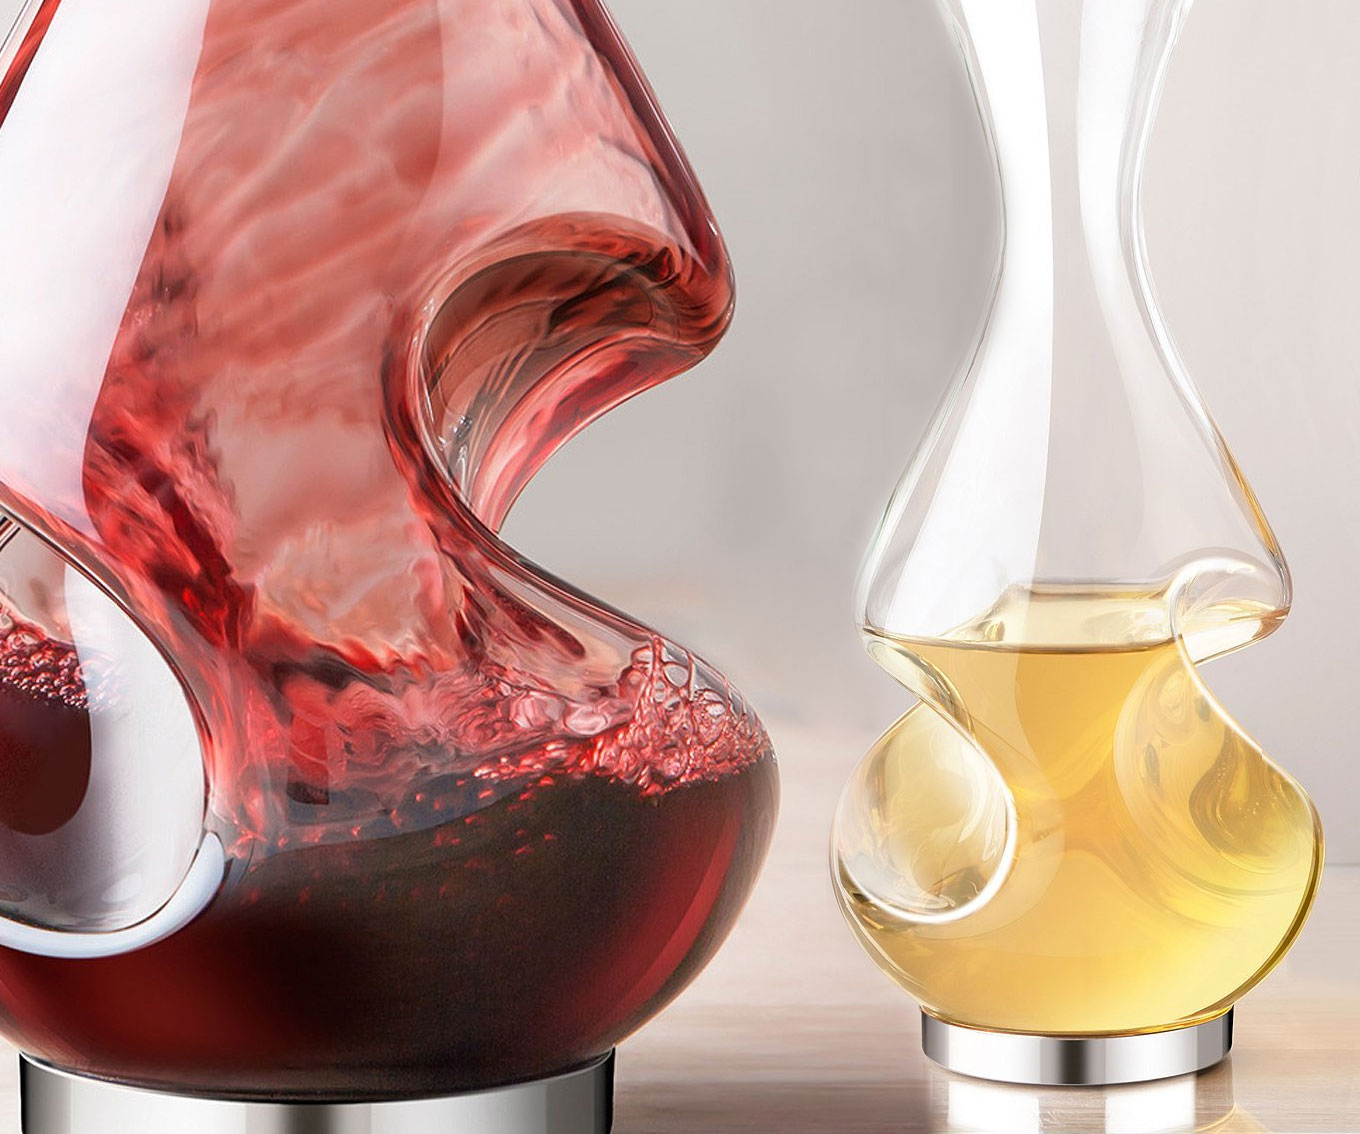 Aerator And Decanter Glass